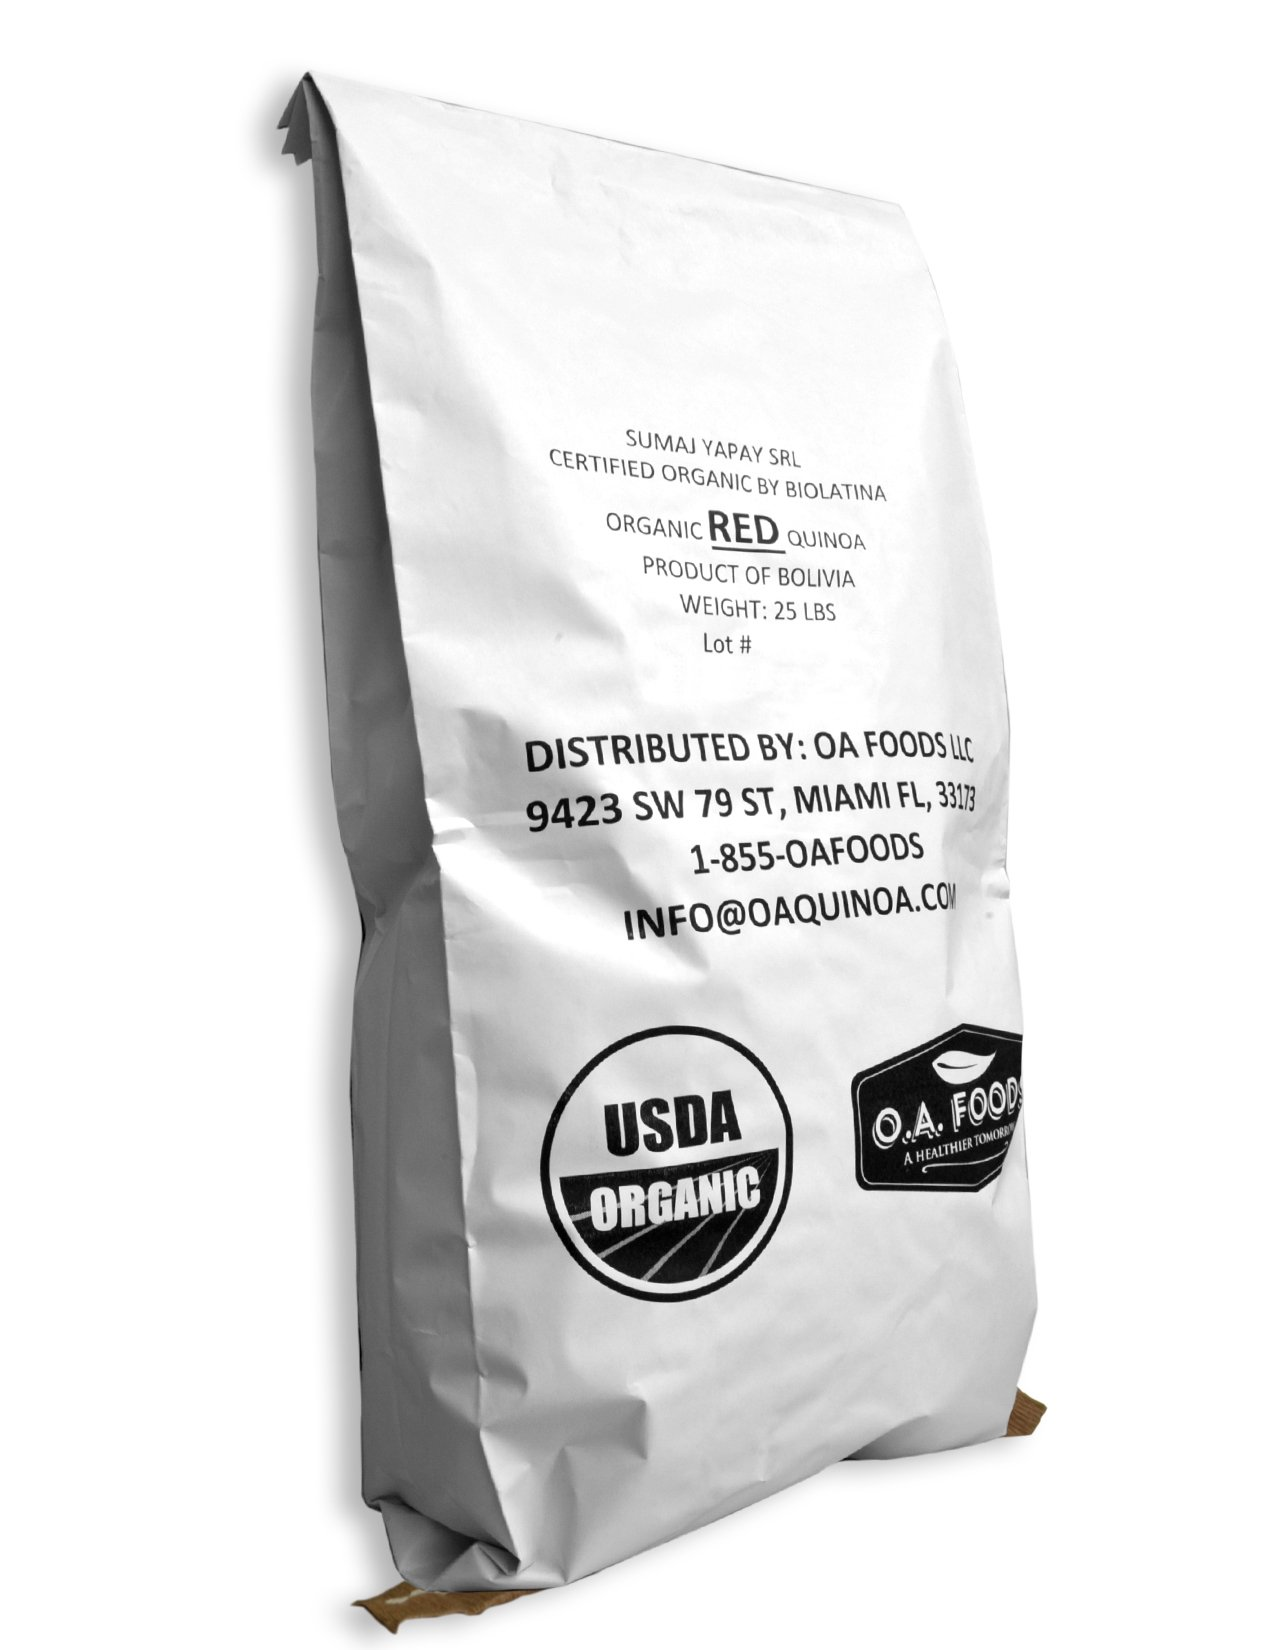 Royal Organic Red OA Quinoa (25 Lb bag)